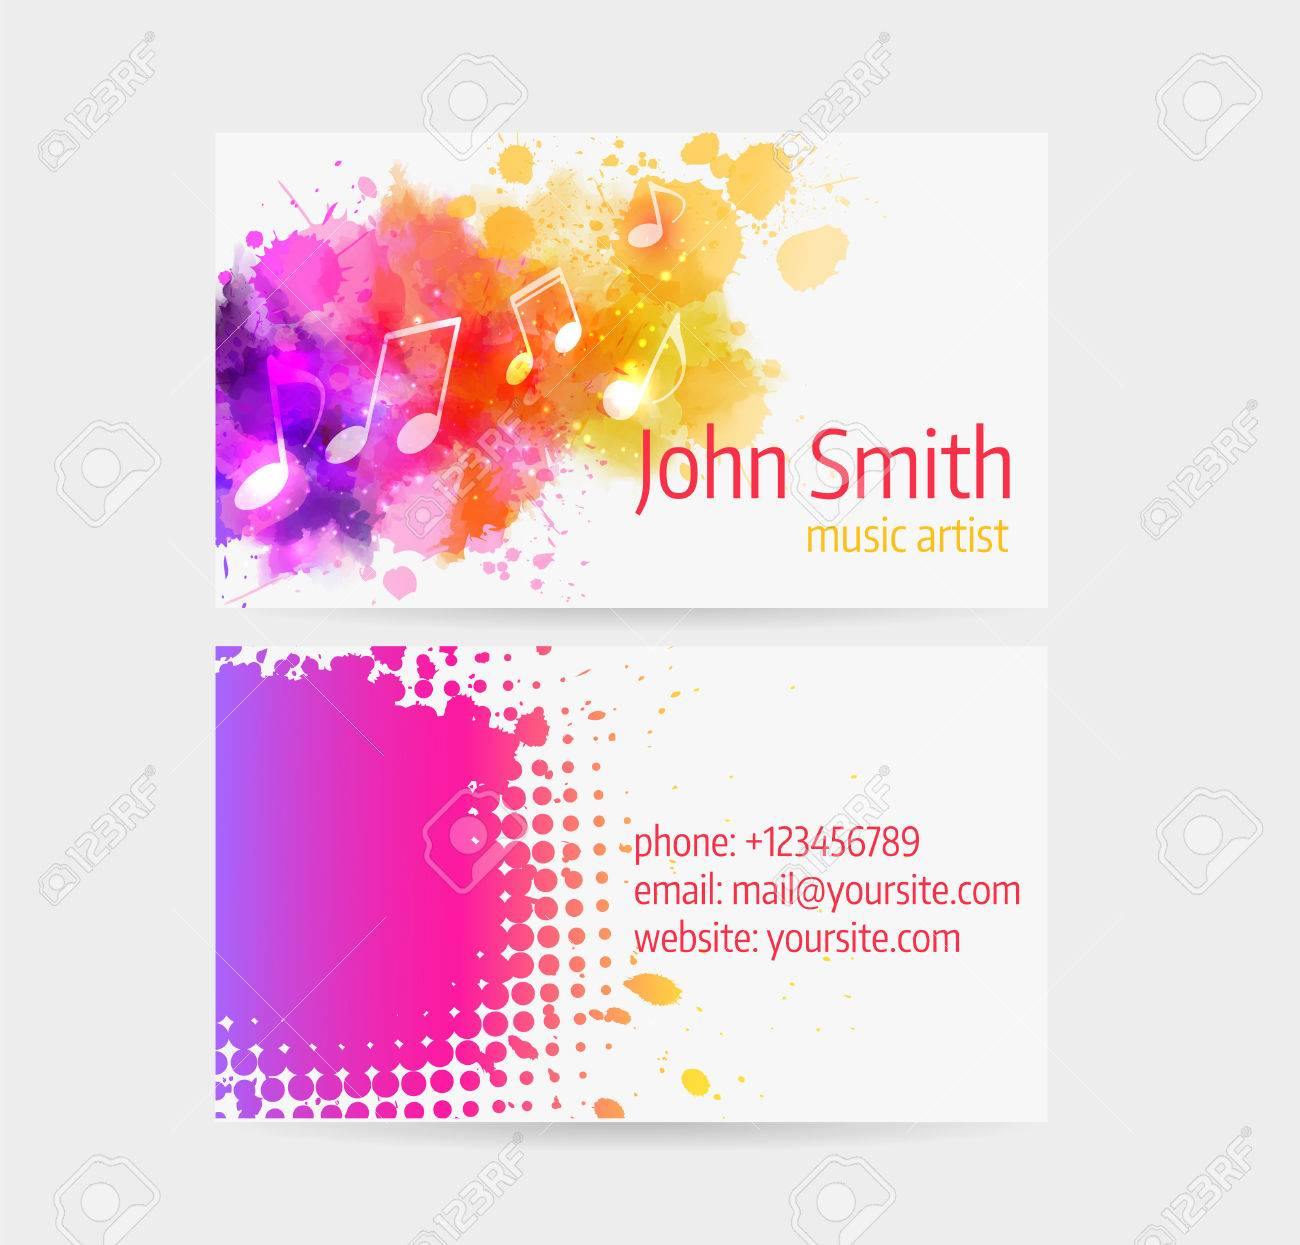 Business Card Template - Front And Back Side. Abstract Colored ...